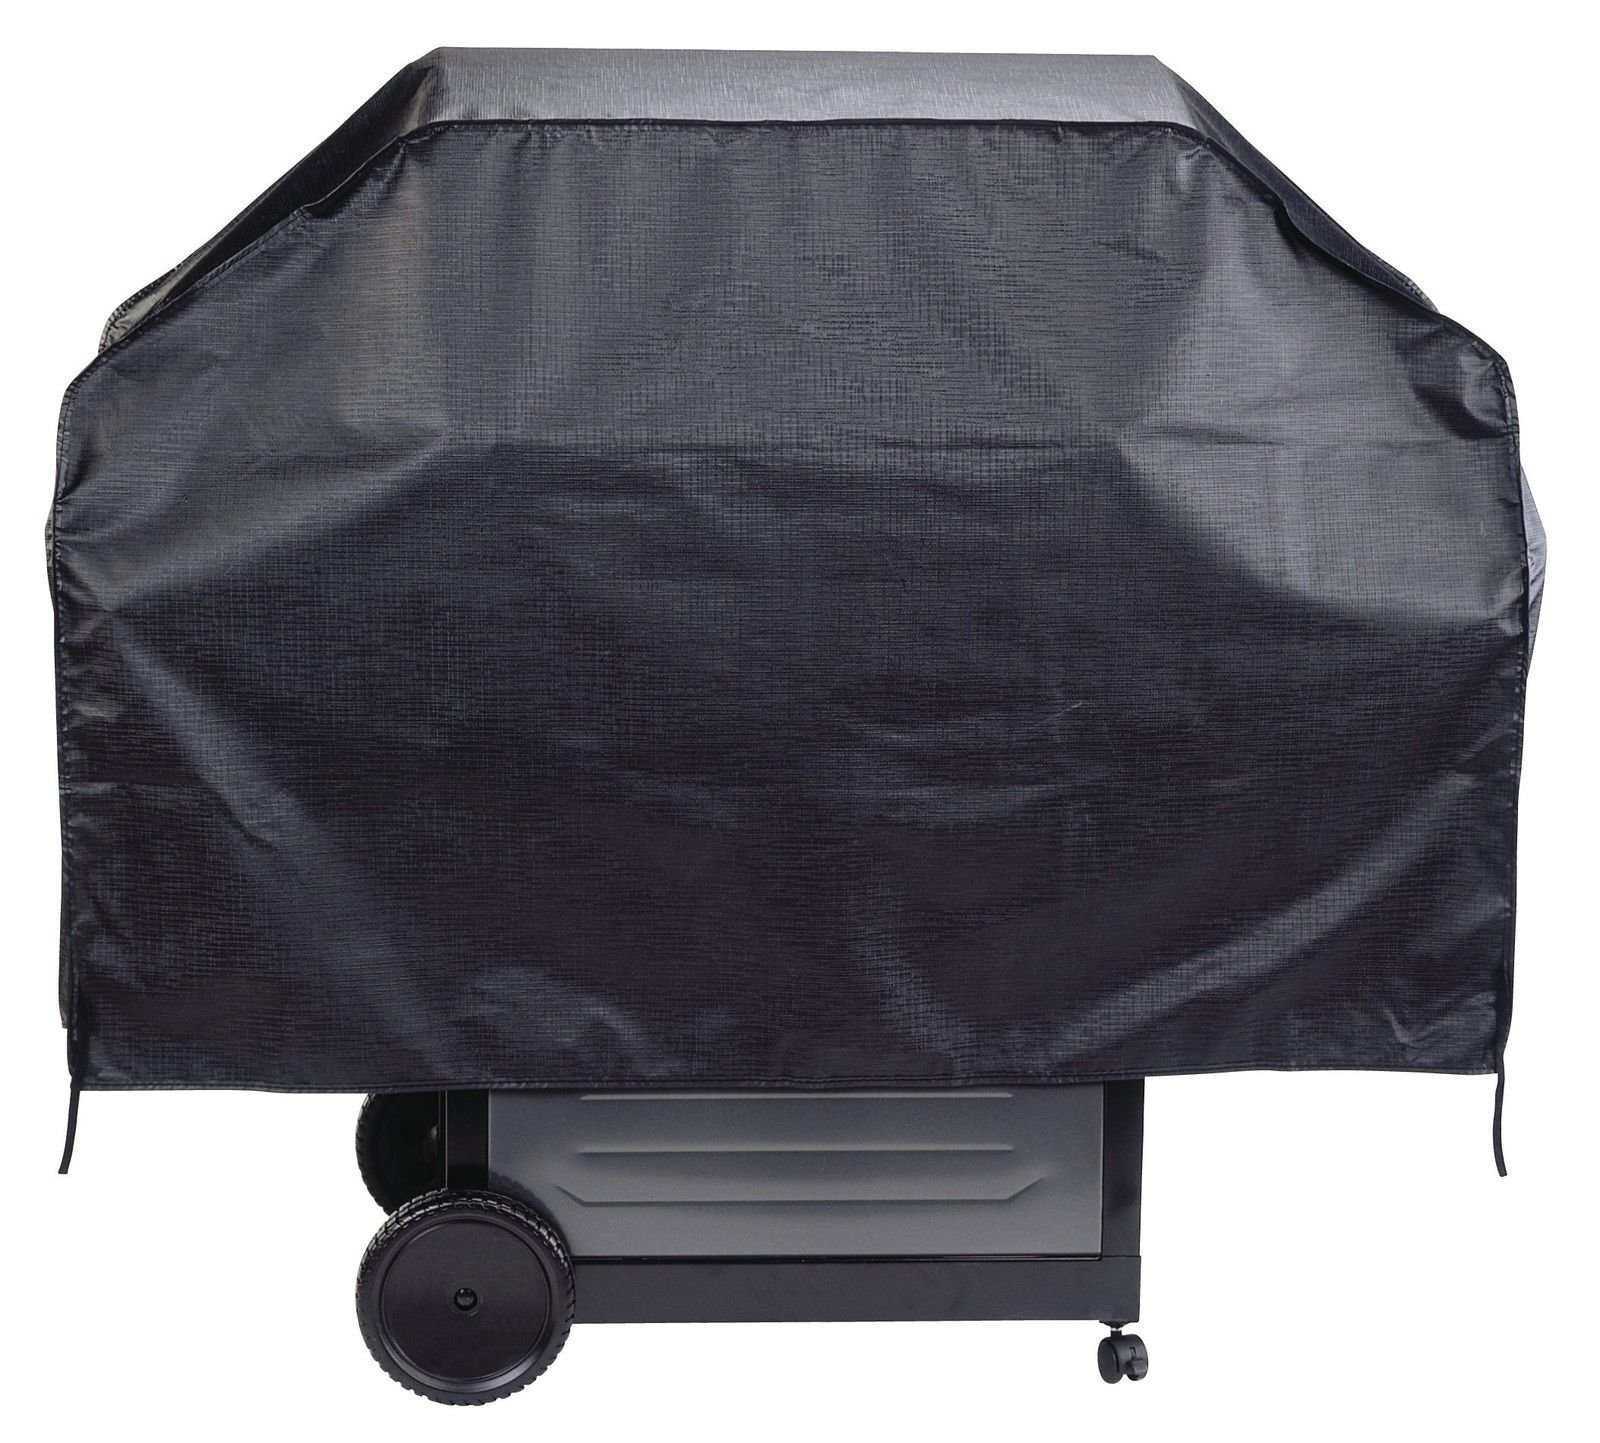 (Ship from USA) Modern Leisure 60-Inch Tear Resistent Grill Cover /ITEM NO#8Y-IFW81854280349